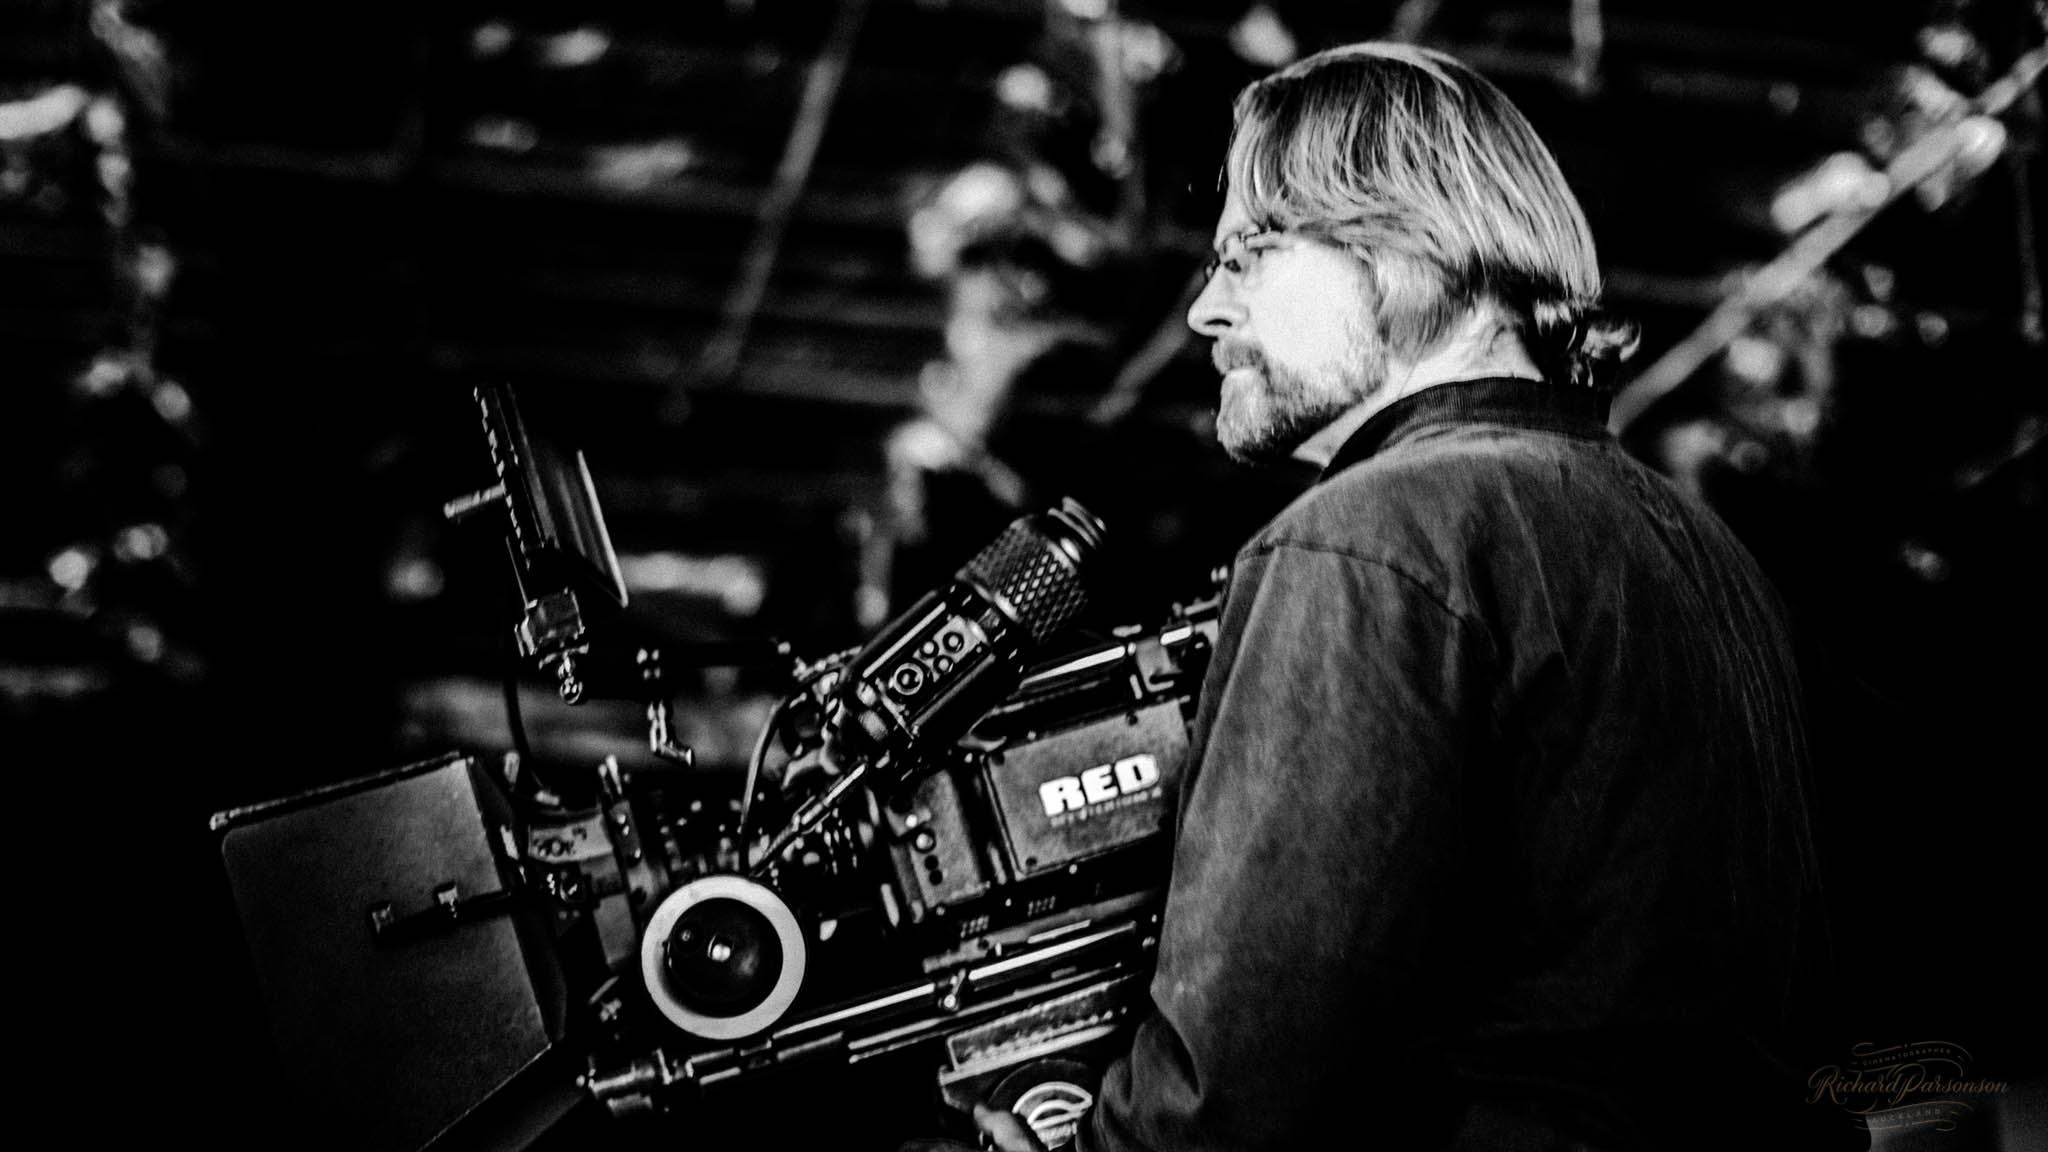 Behind the Scenes, Director of PHotography on set